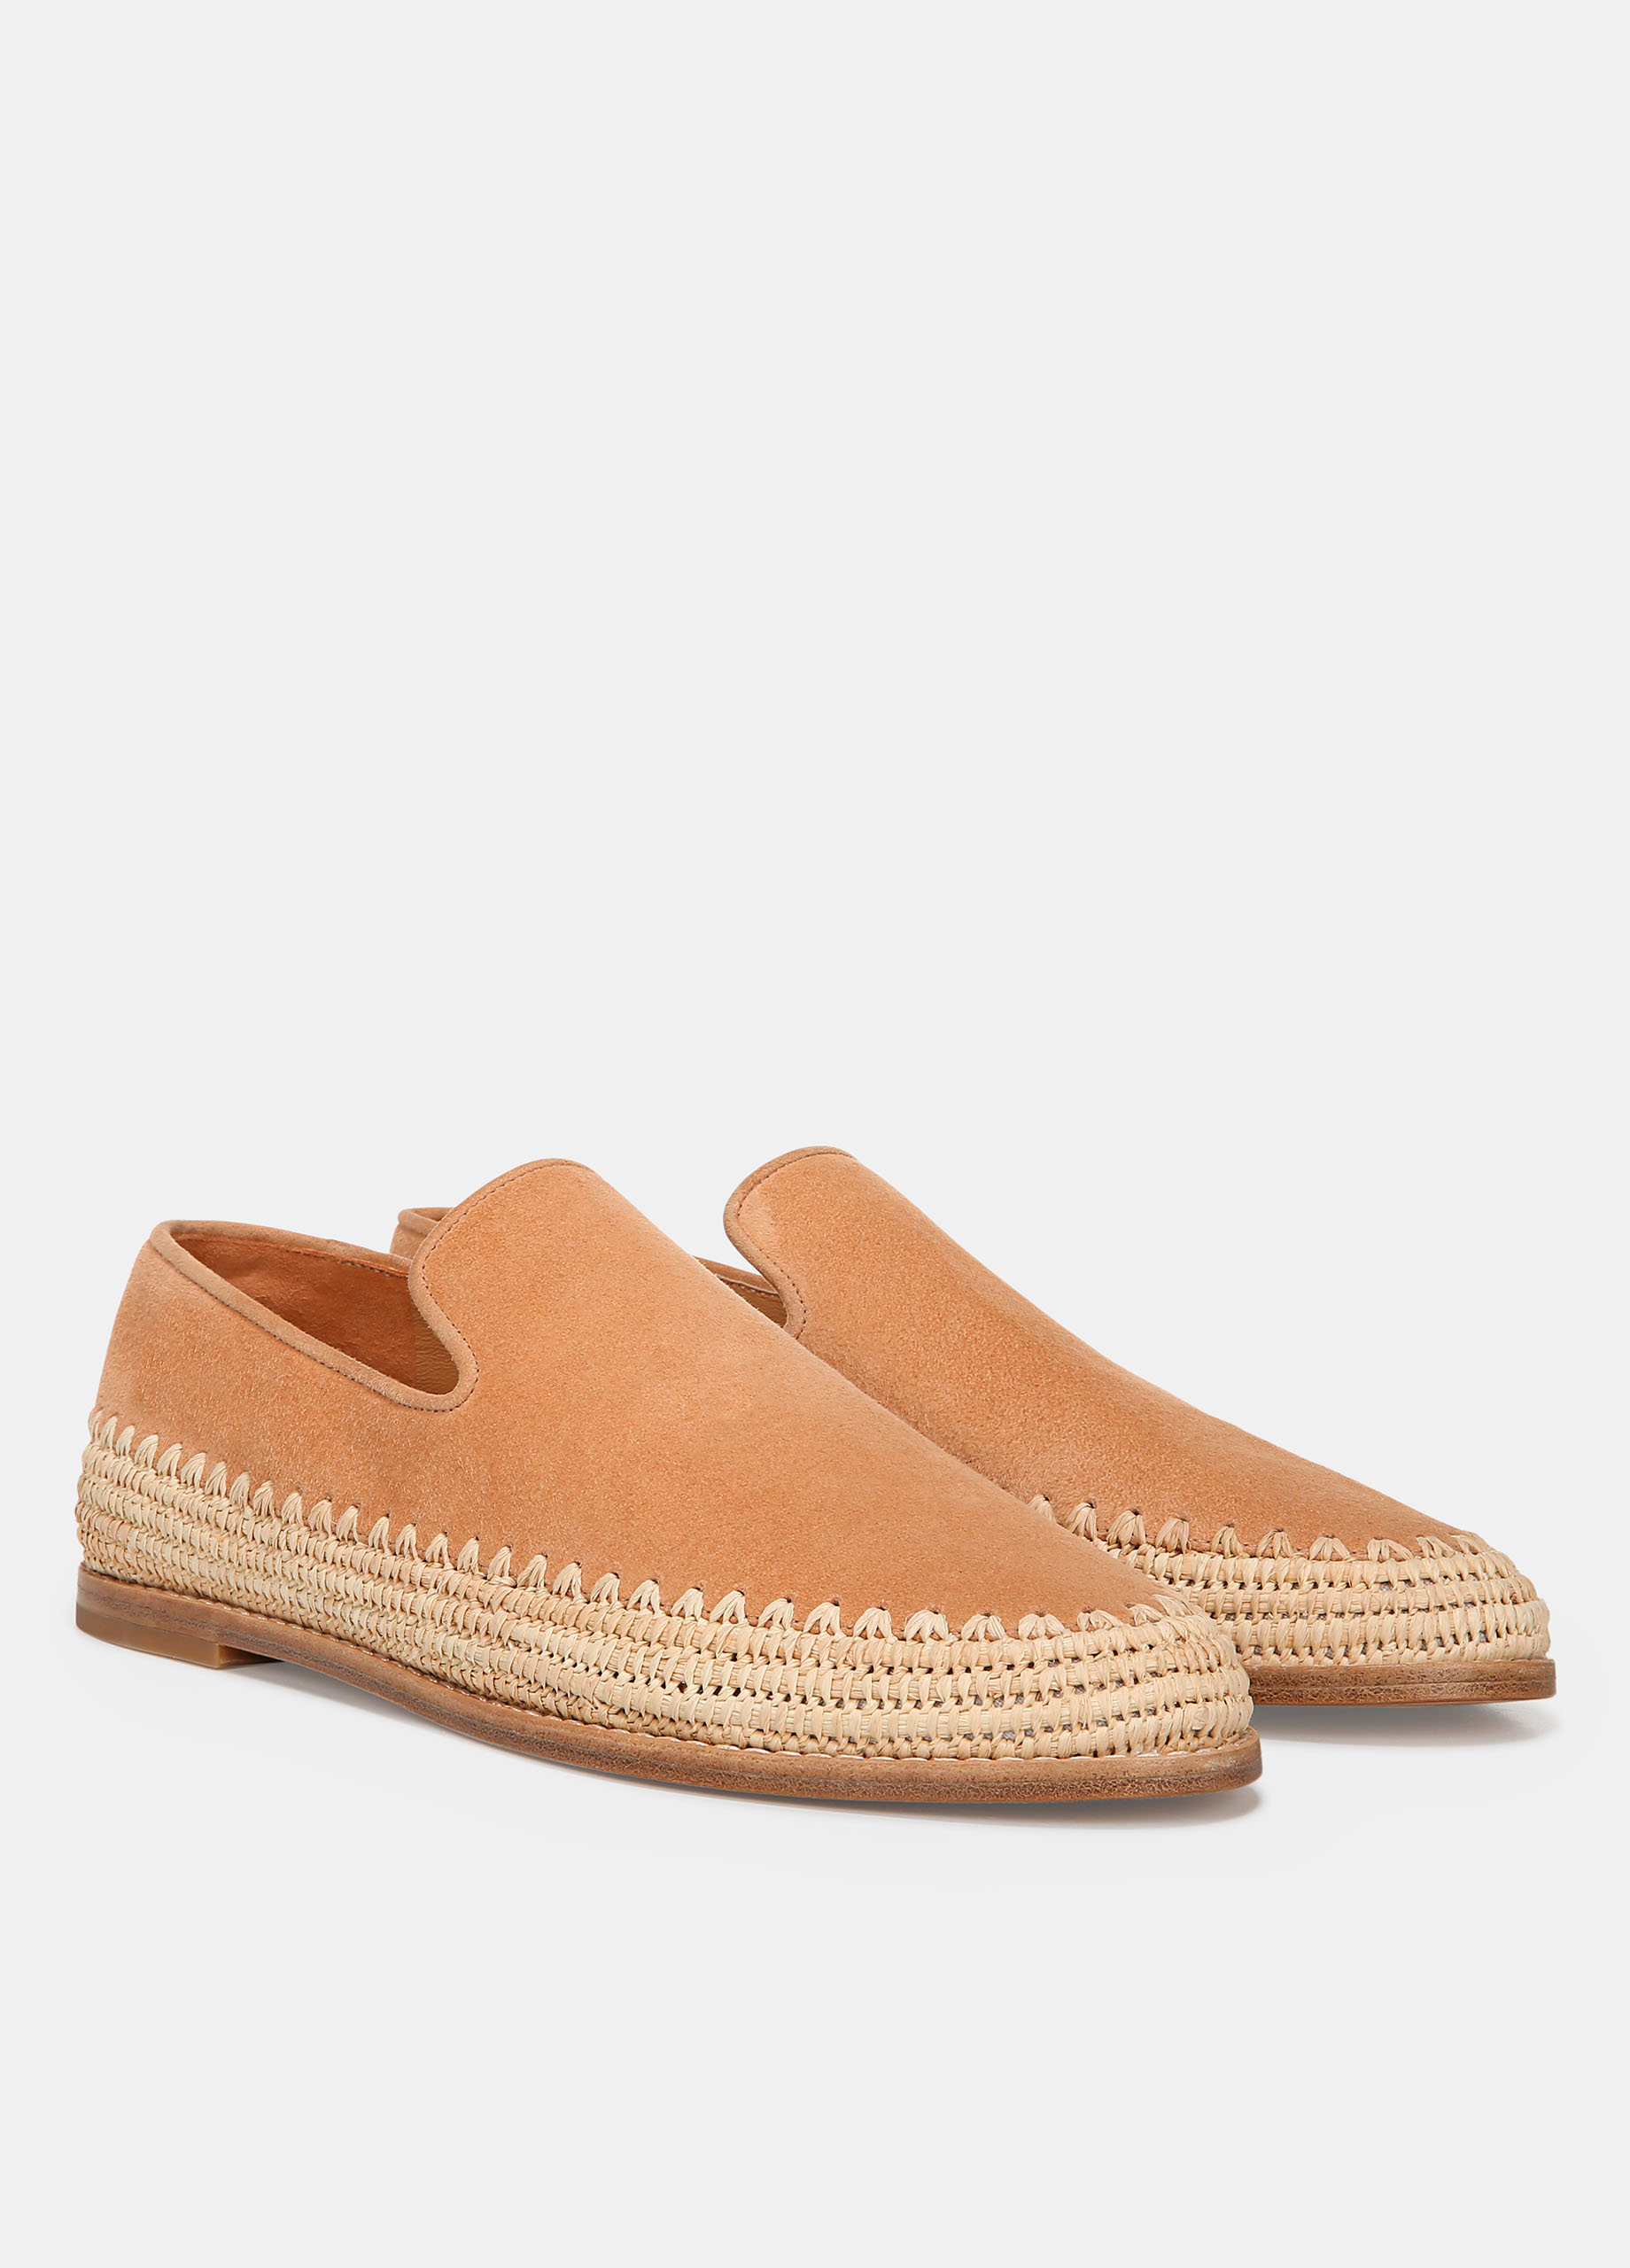 Suede Jalen Loafer